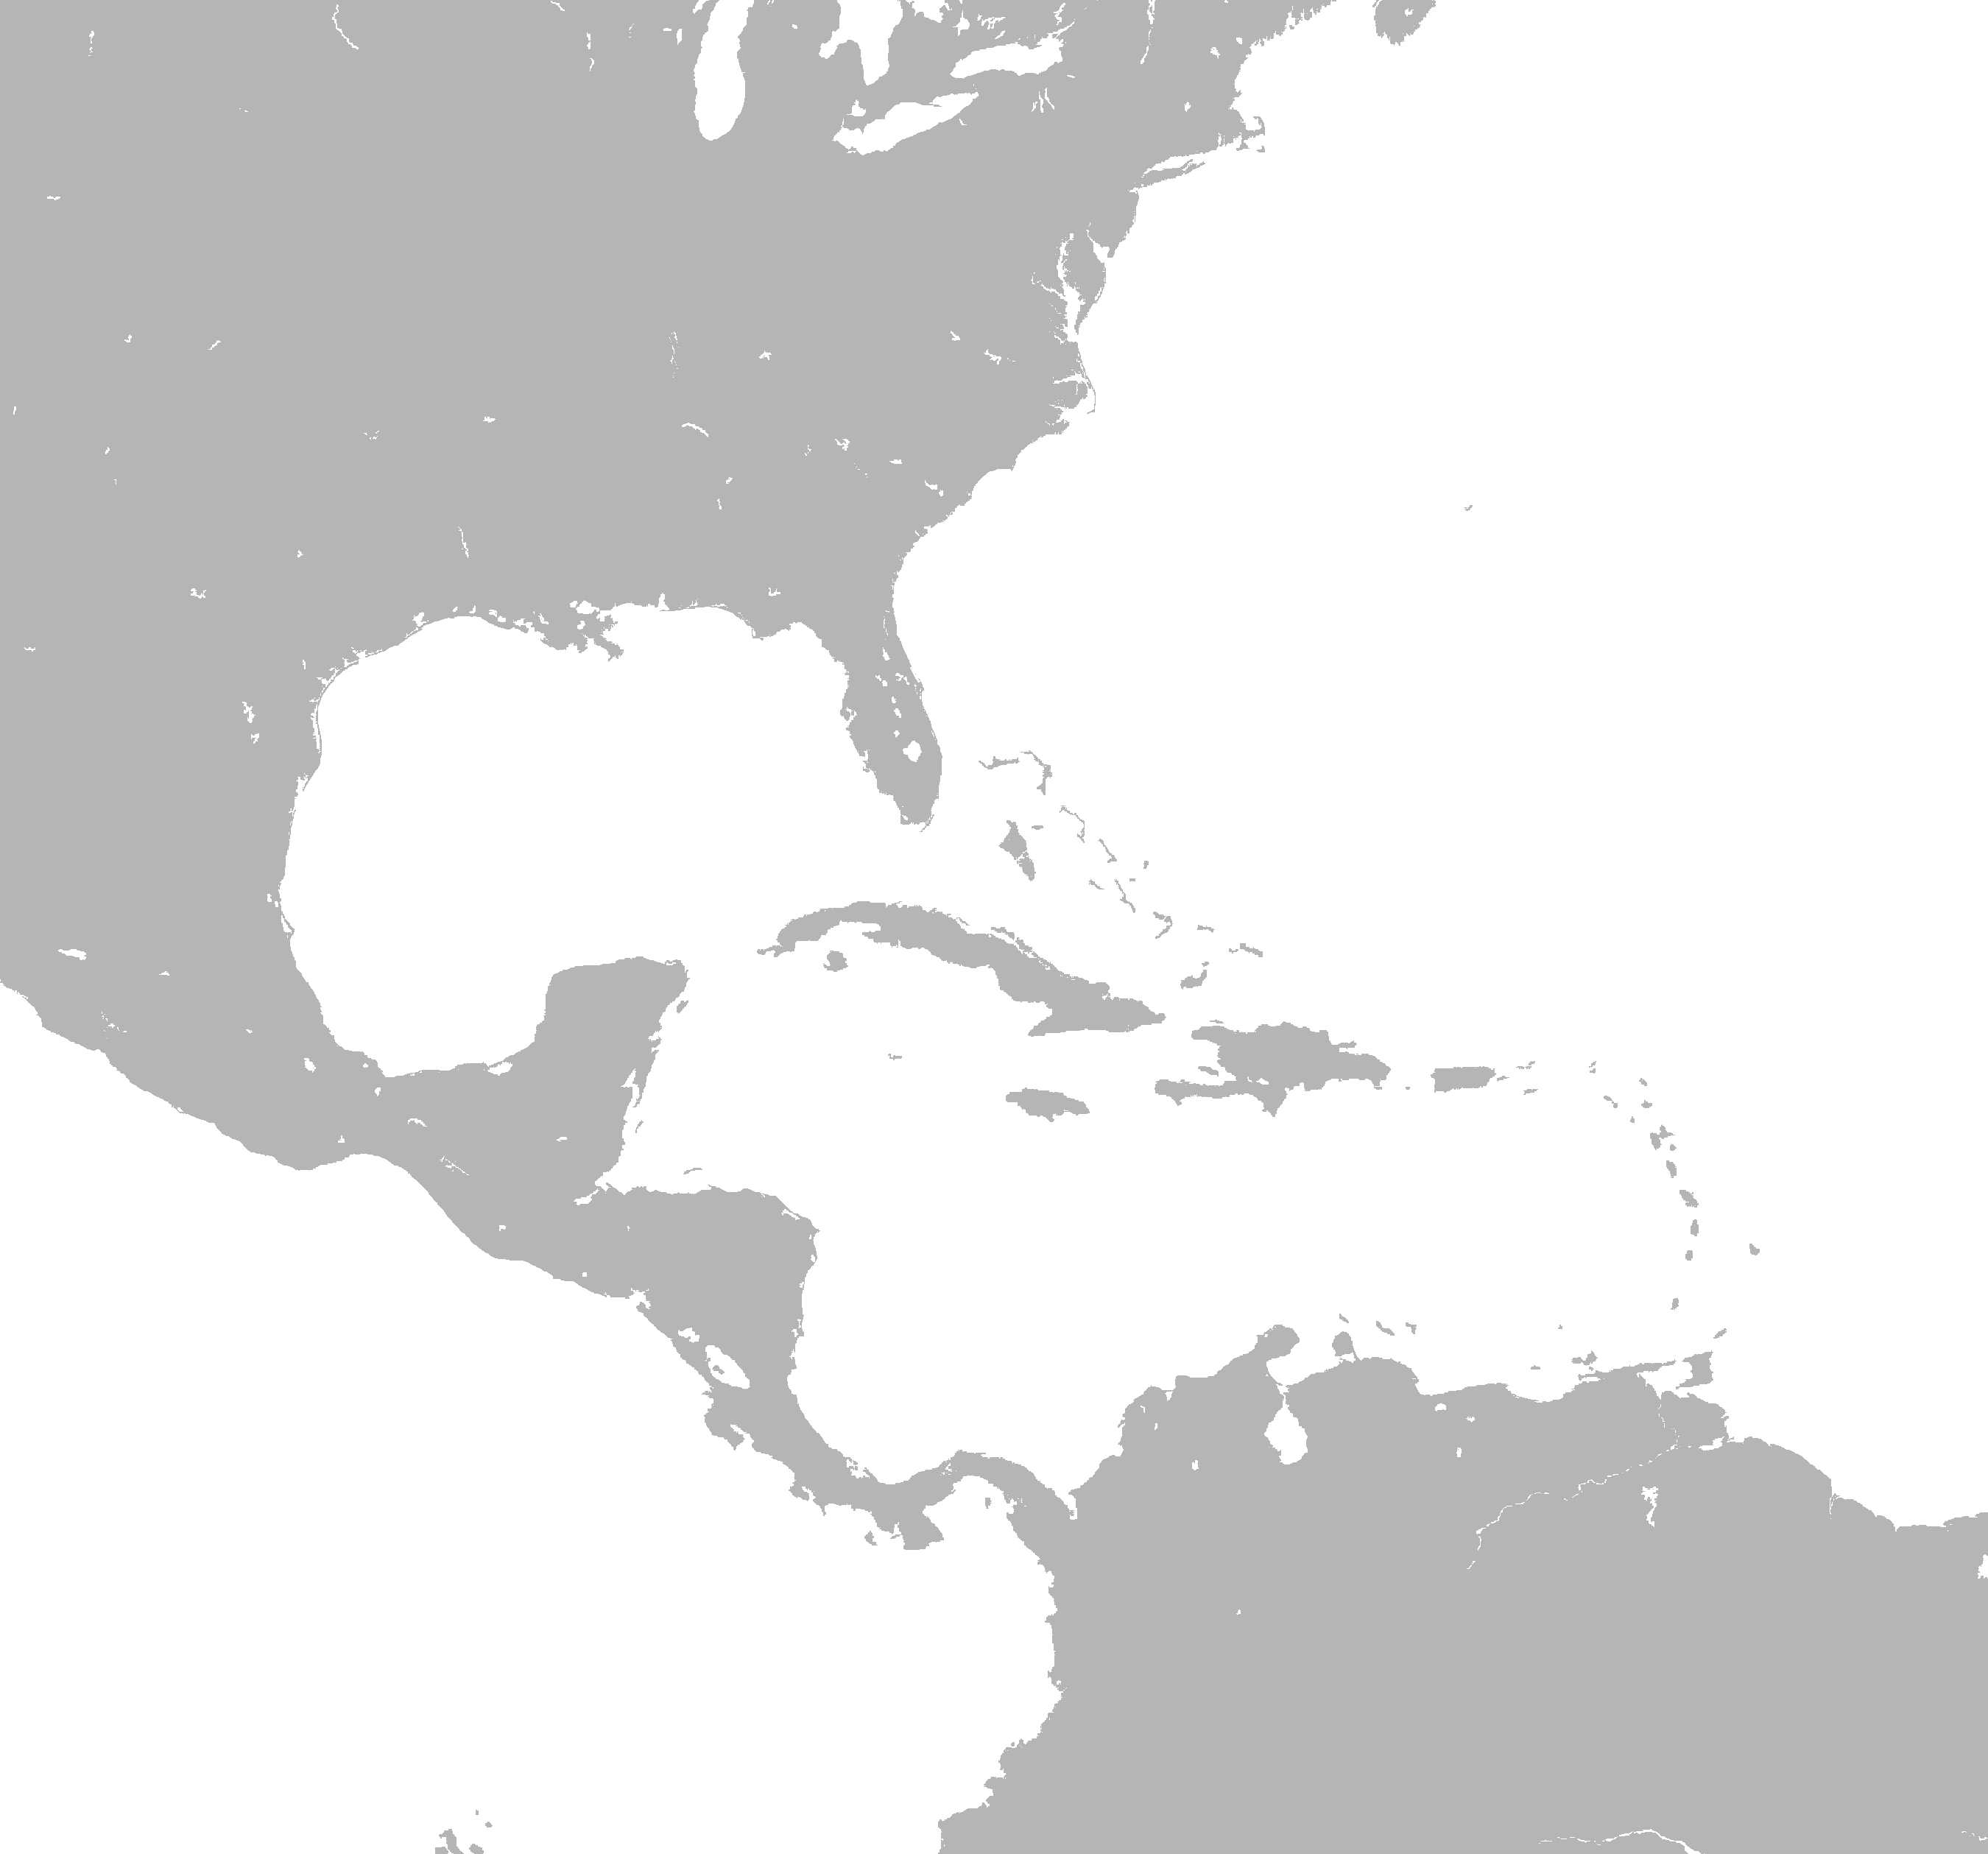 File:Caribbean Map Blank.png